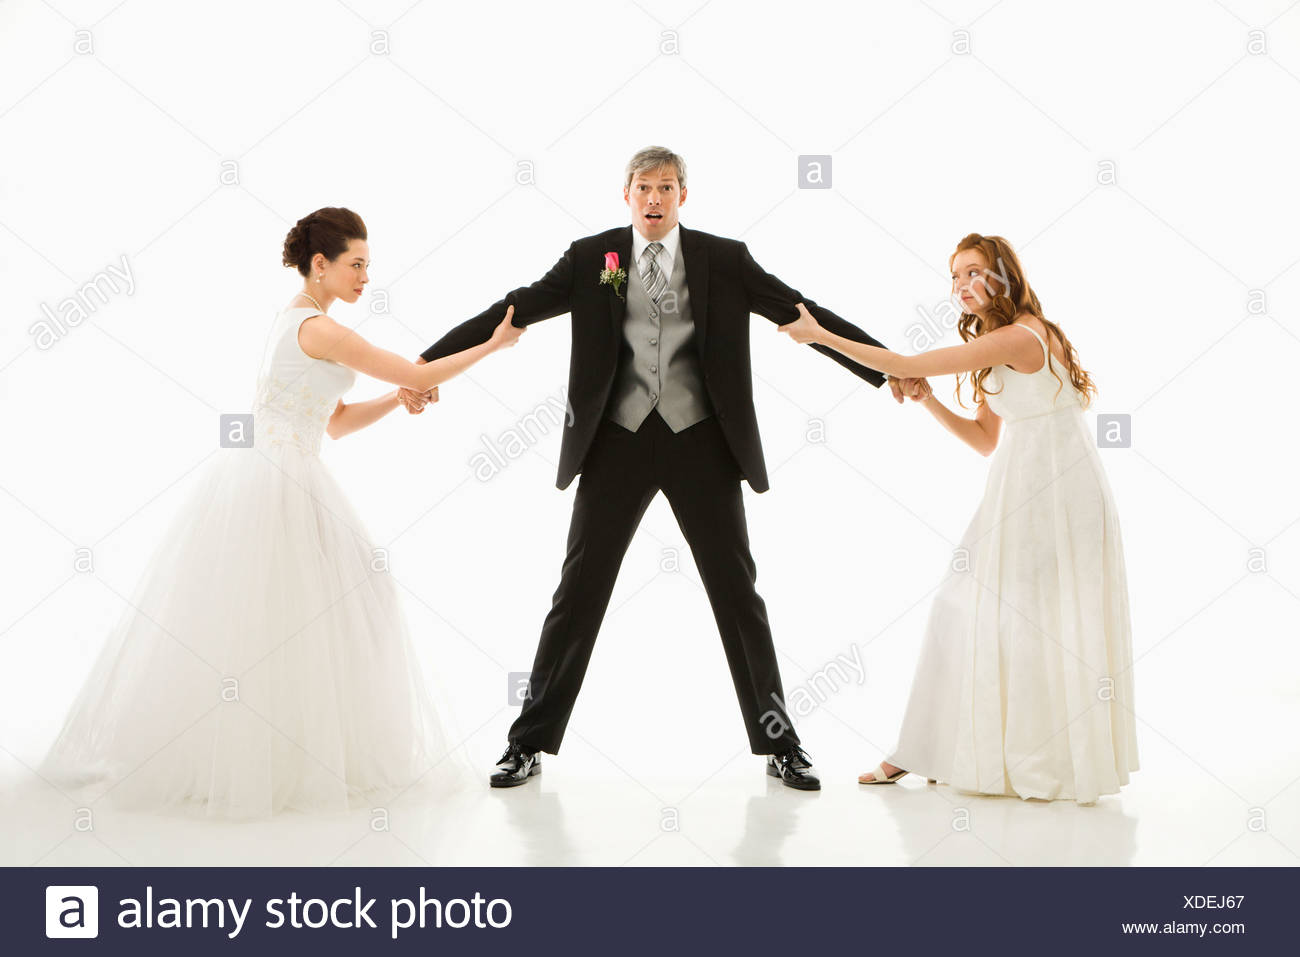 Caucasian and Asian brides pulling on Caucasian groom s arms